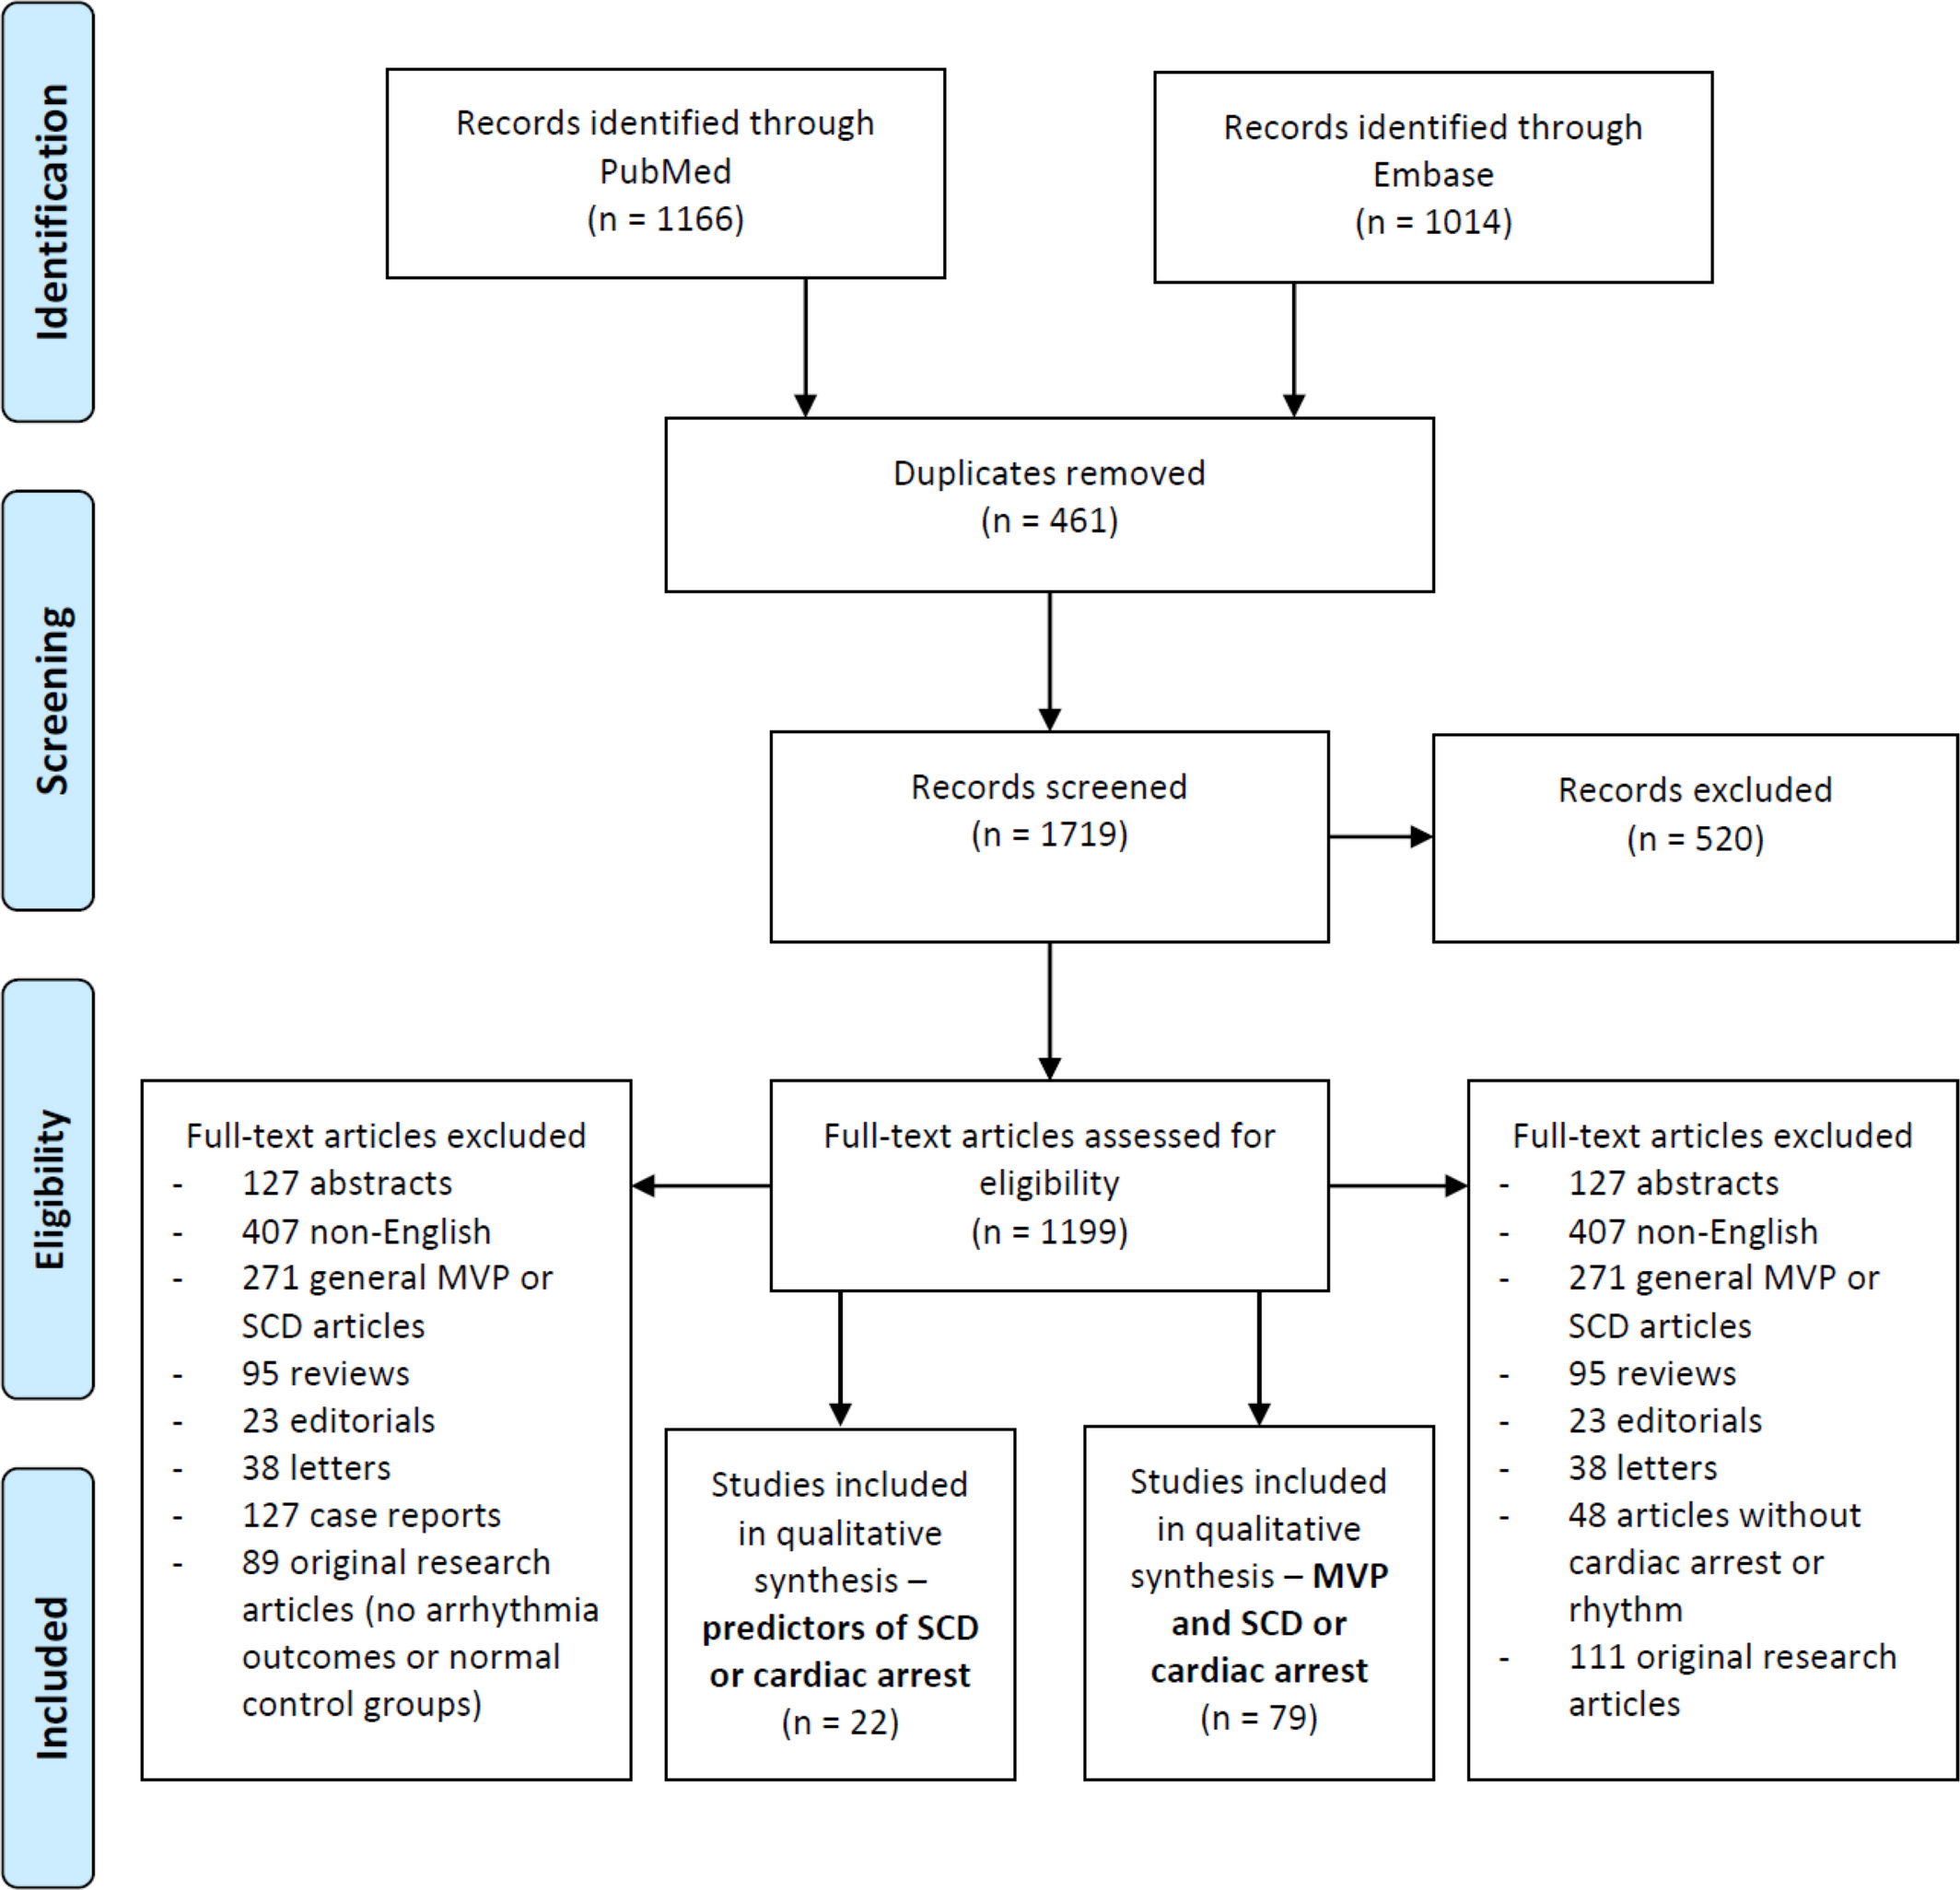 Mitral Valve Prolapse and Sudden Cardiac Death: A Systematic